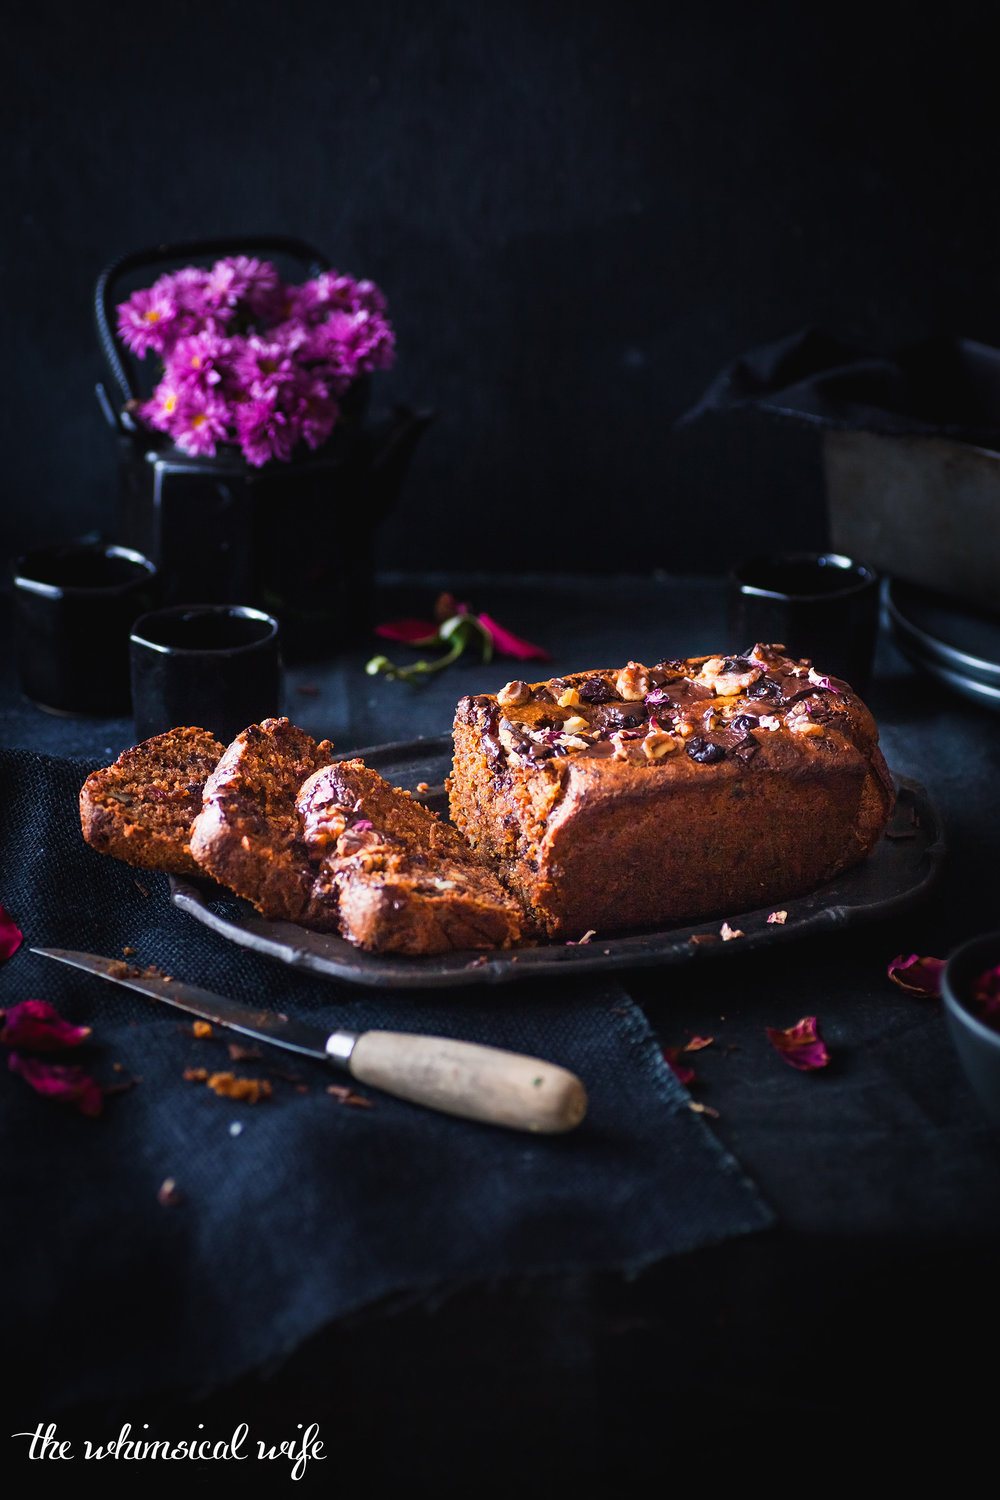 30 Cakes In 30 Days | 4. Dark Chocolate, Cranberry & Walnut Spiced Pumpkin Bread {GF, DF, Vegan} | The Whimsical Wife